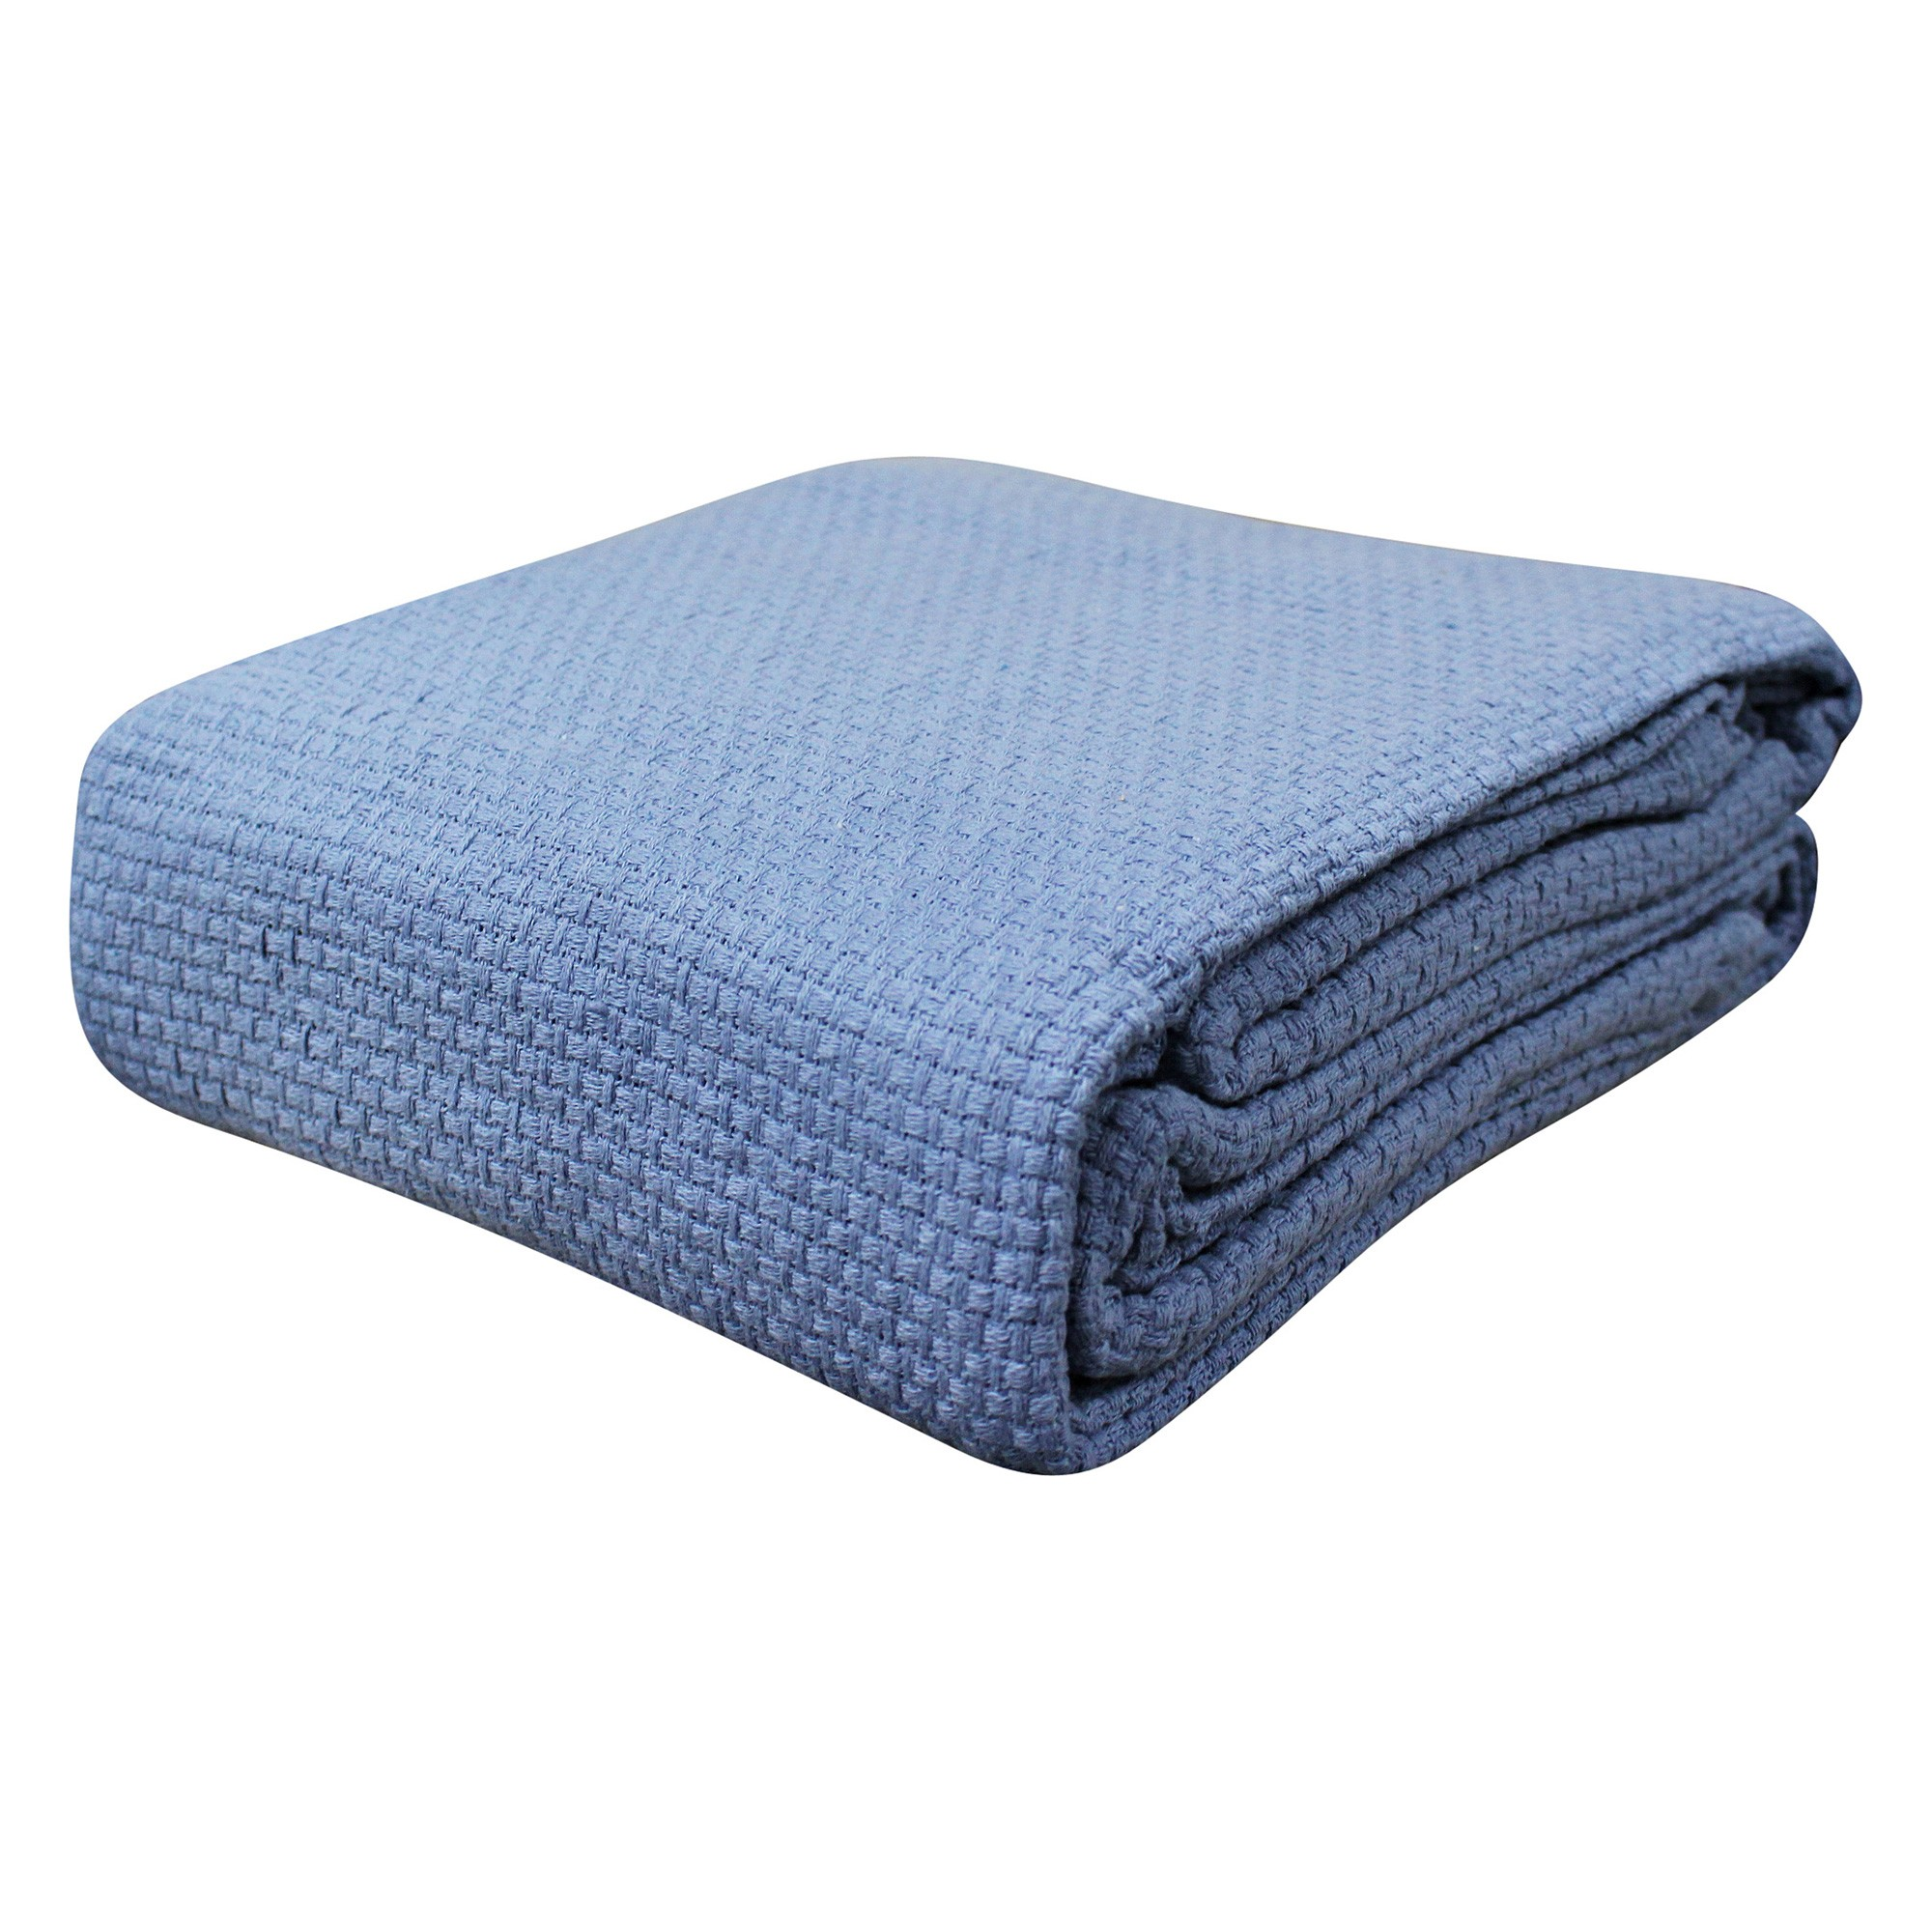 Odyssey Living Pebble Weave Cotton Blanket, Single, Denim